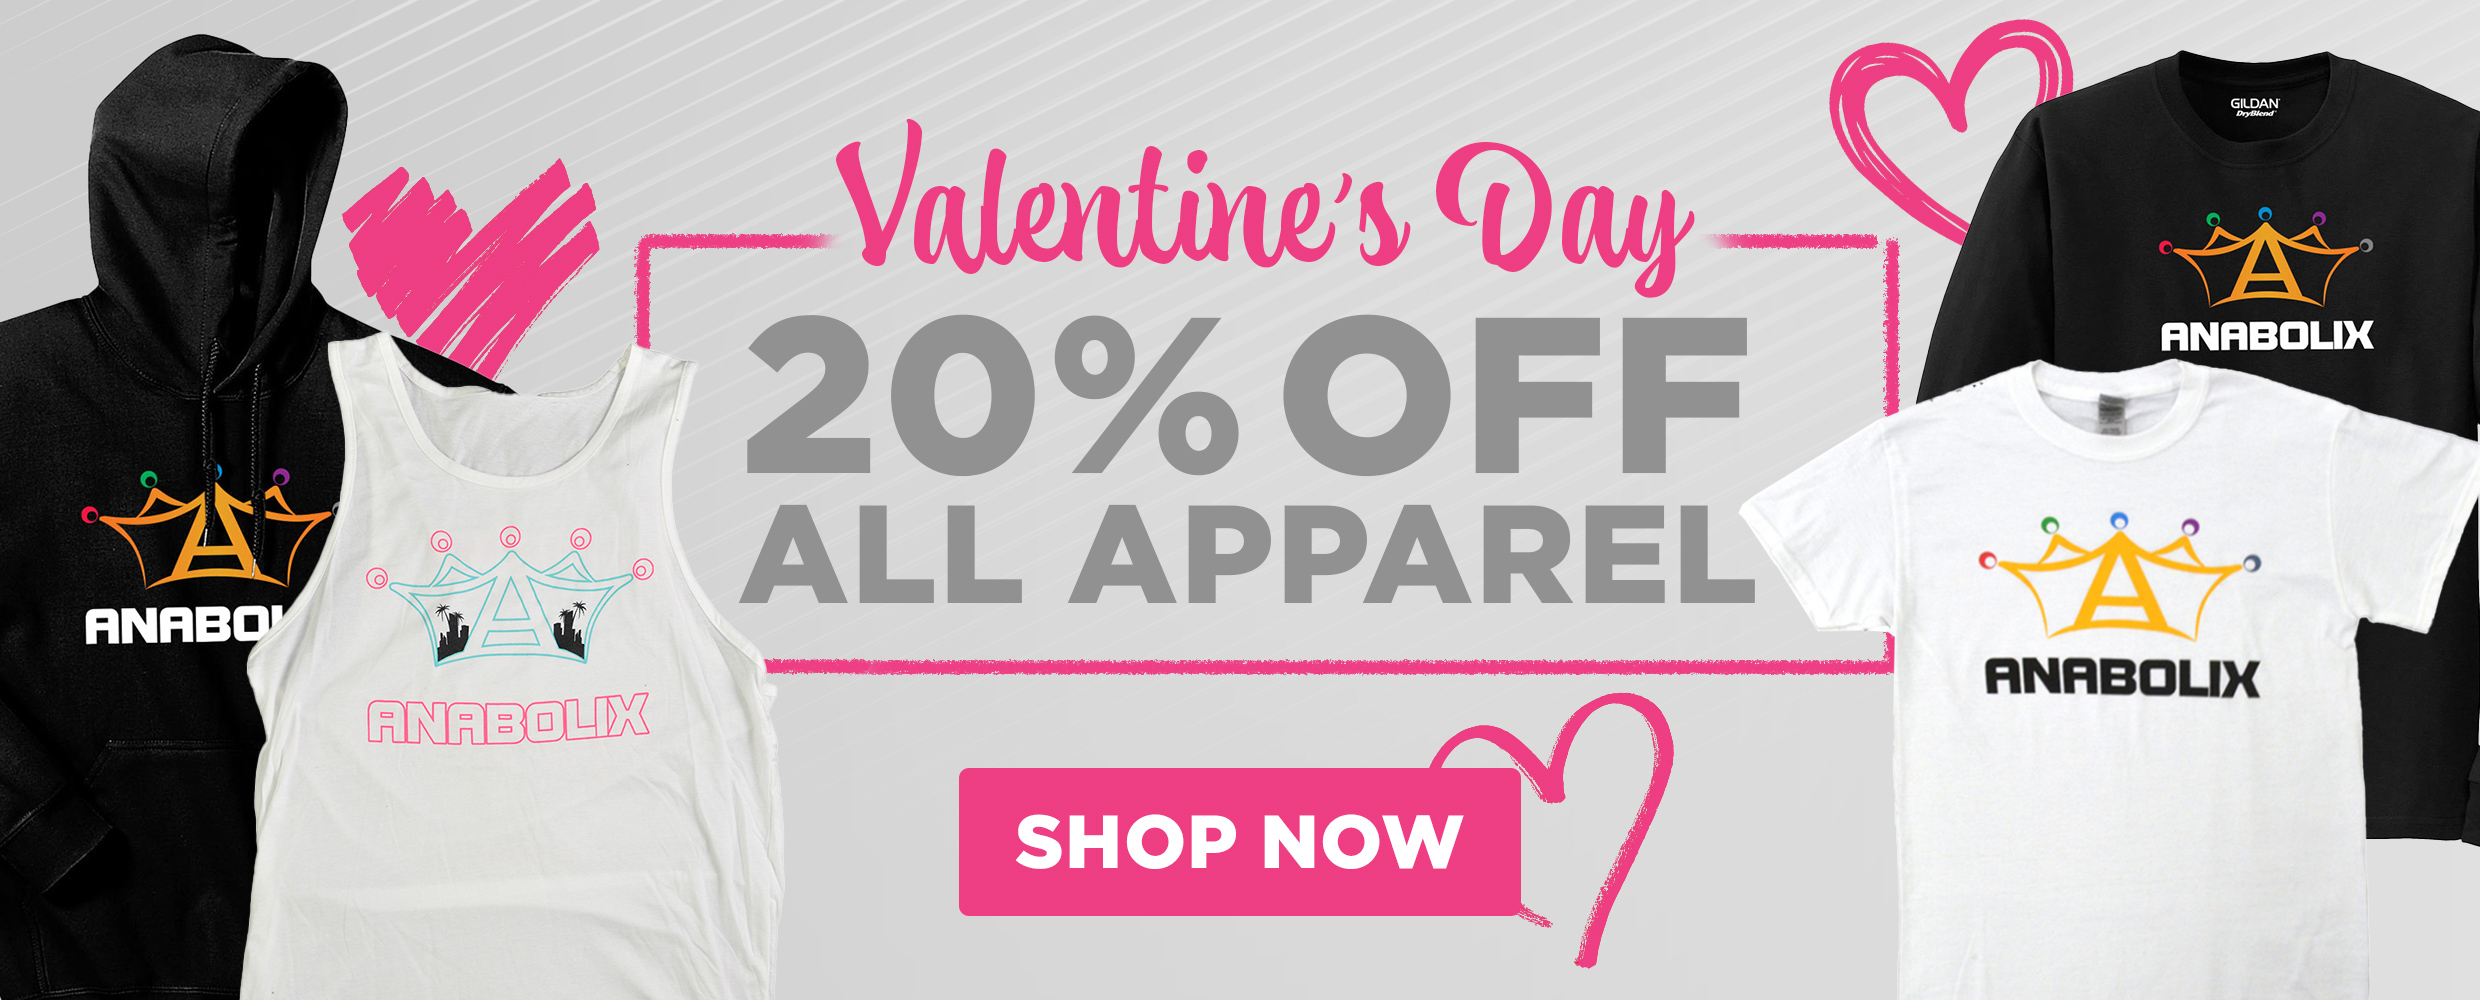 valentine's day 20% off all apparel